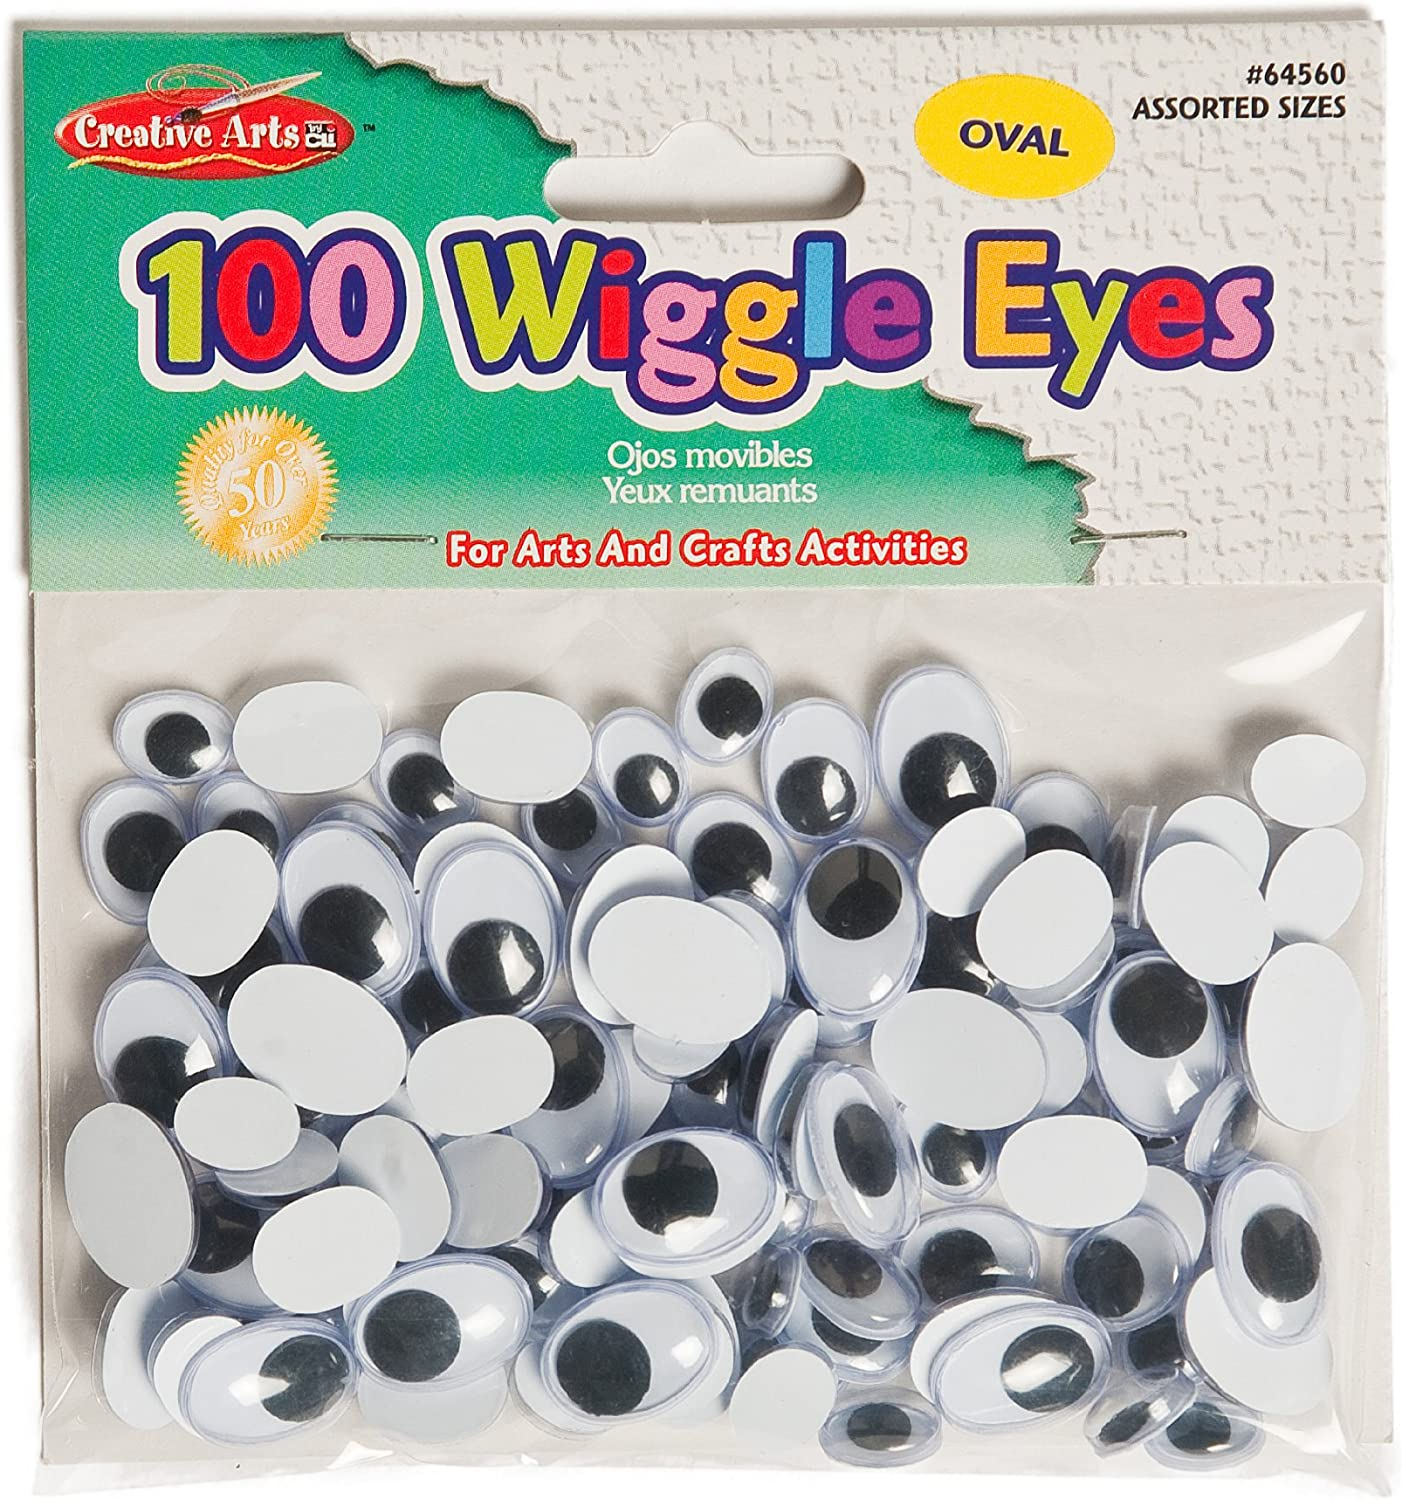 Creative Arts by Charles Leonard Wiggle Eyes 64565 15mm Oval 100//Bag Assorted Colors